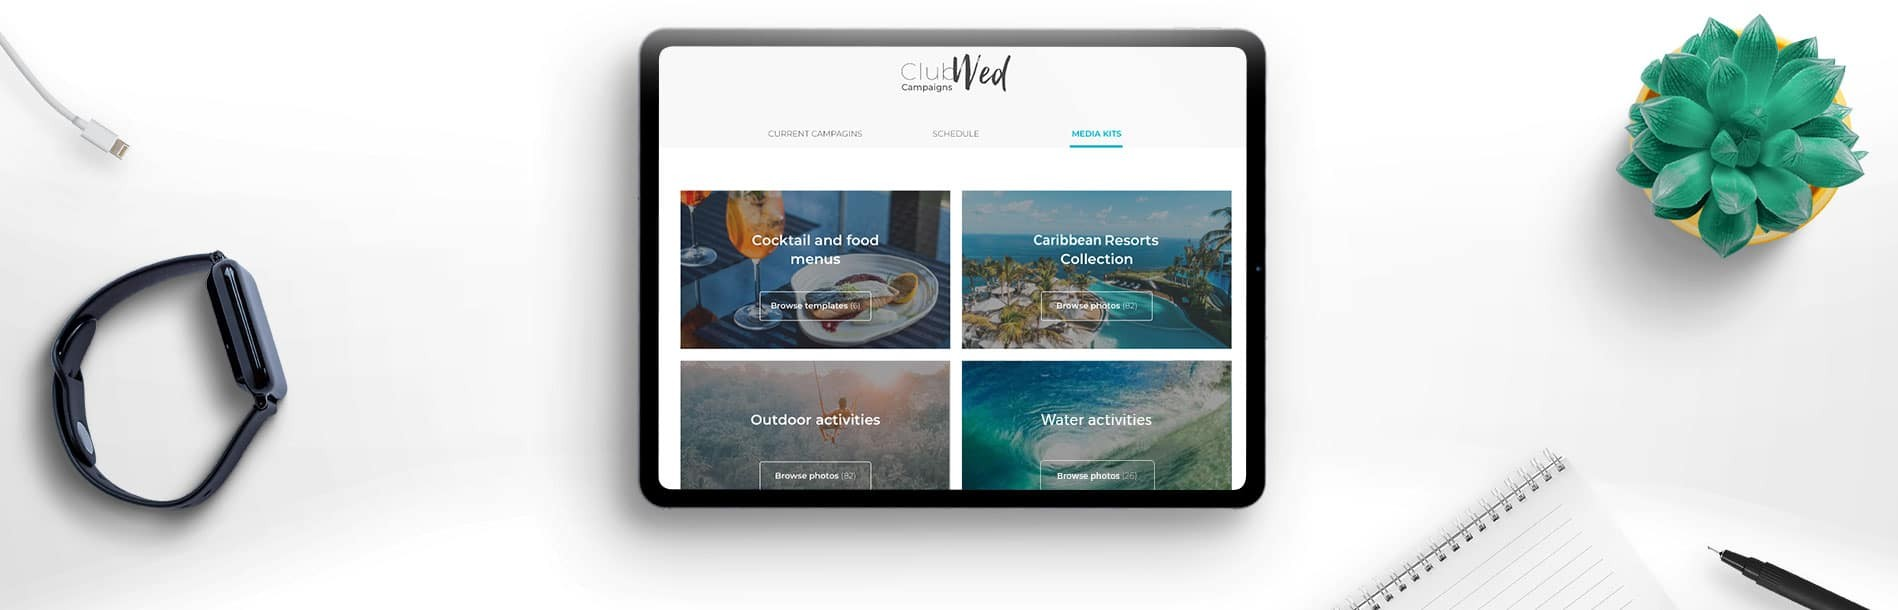 Wedia - Distributed Marketing Management